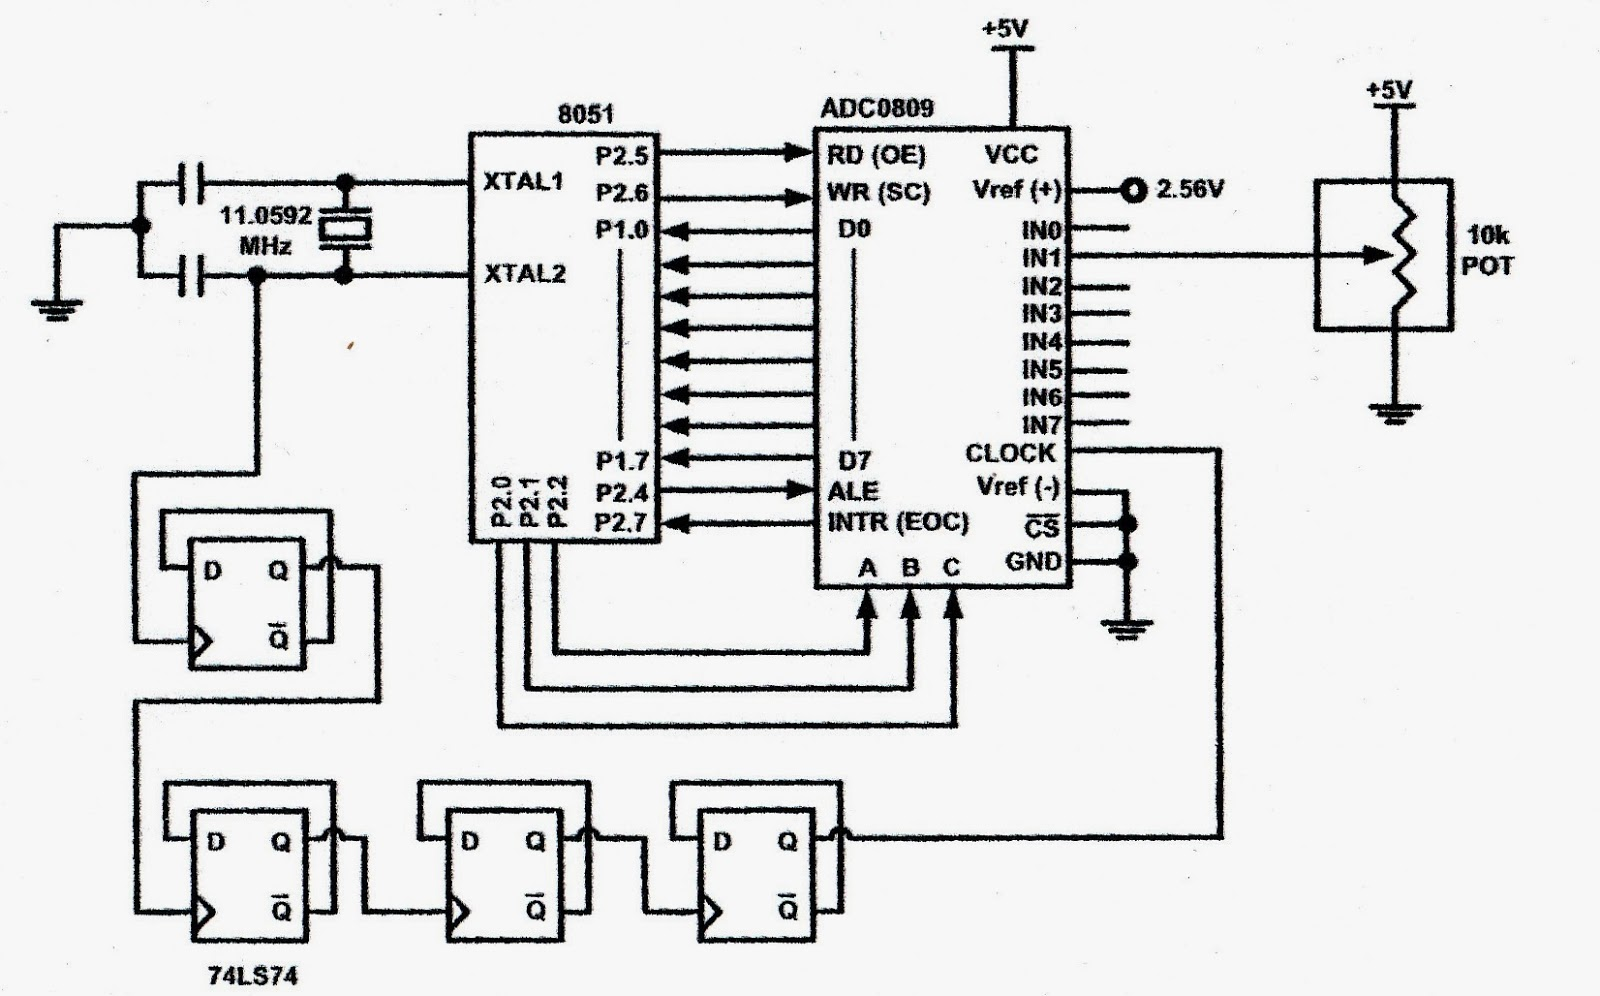 hight resolution of block diagram of adc0809 wiring diagram blog block diagram of adc0809